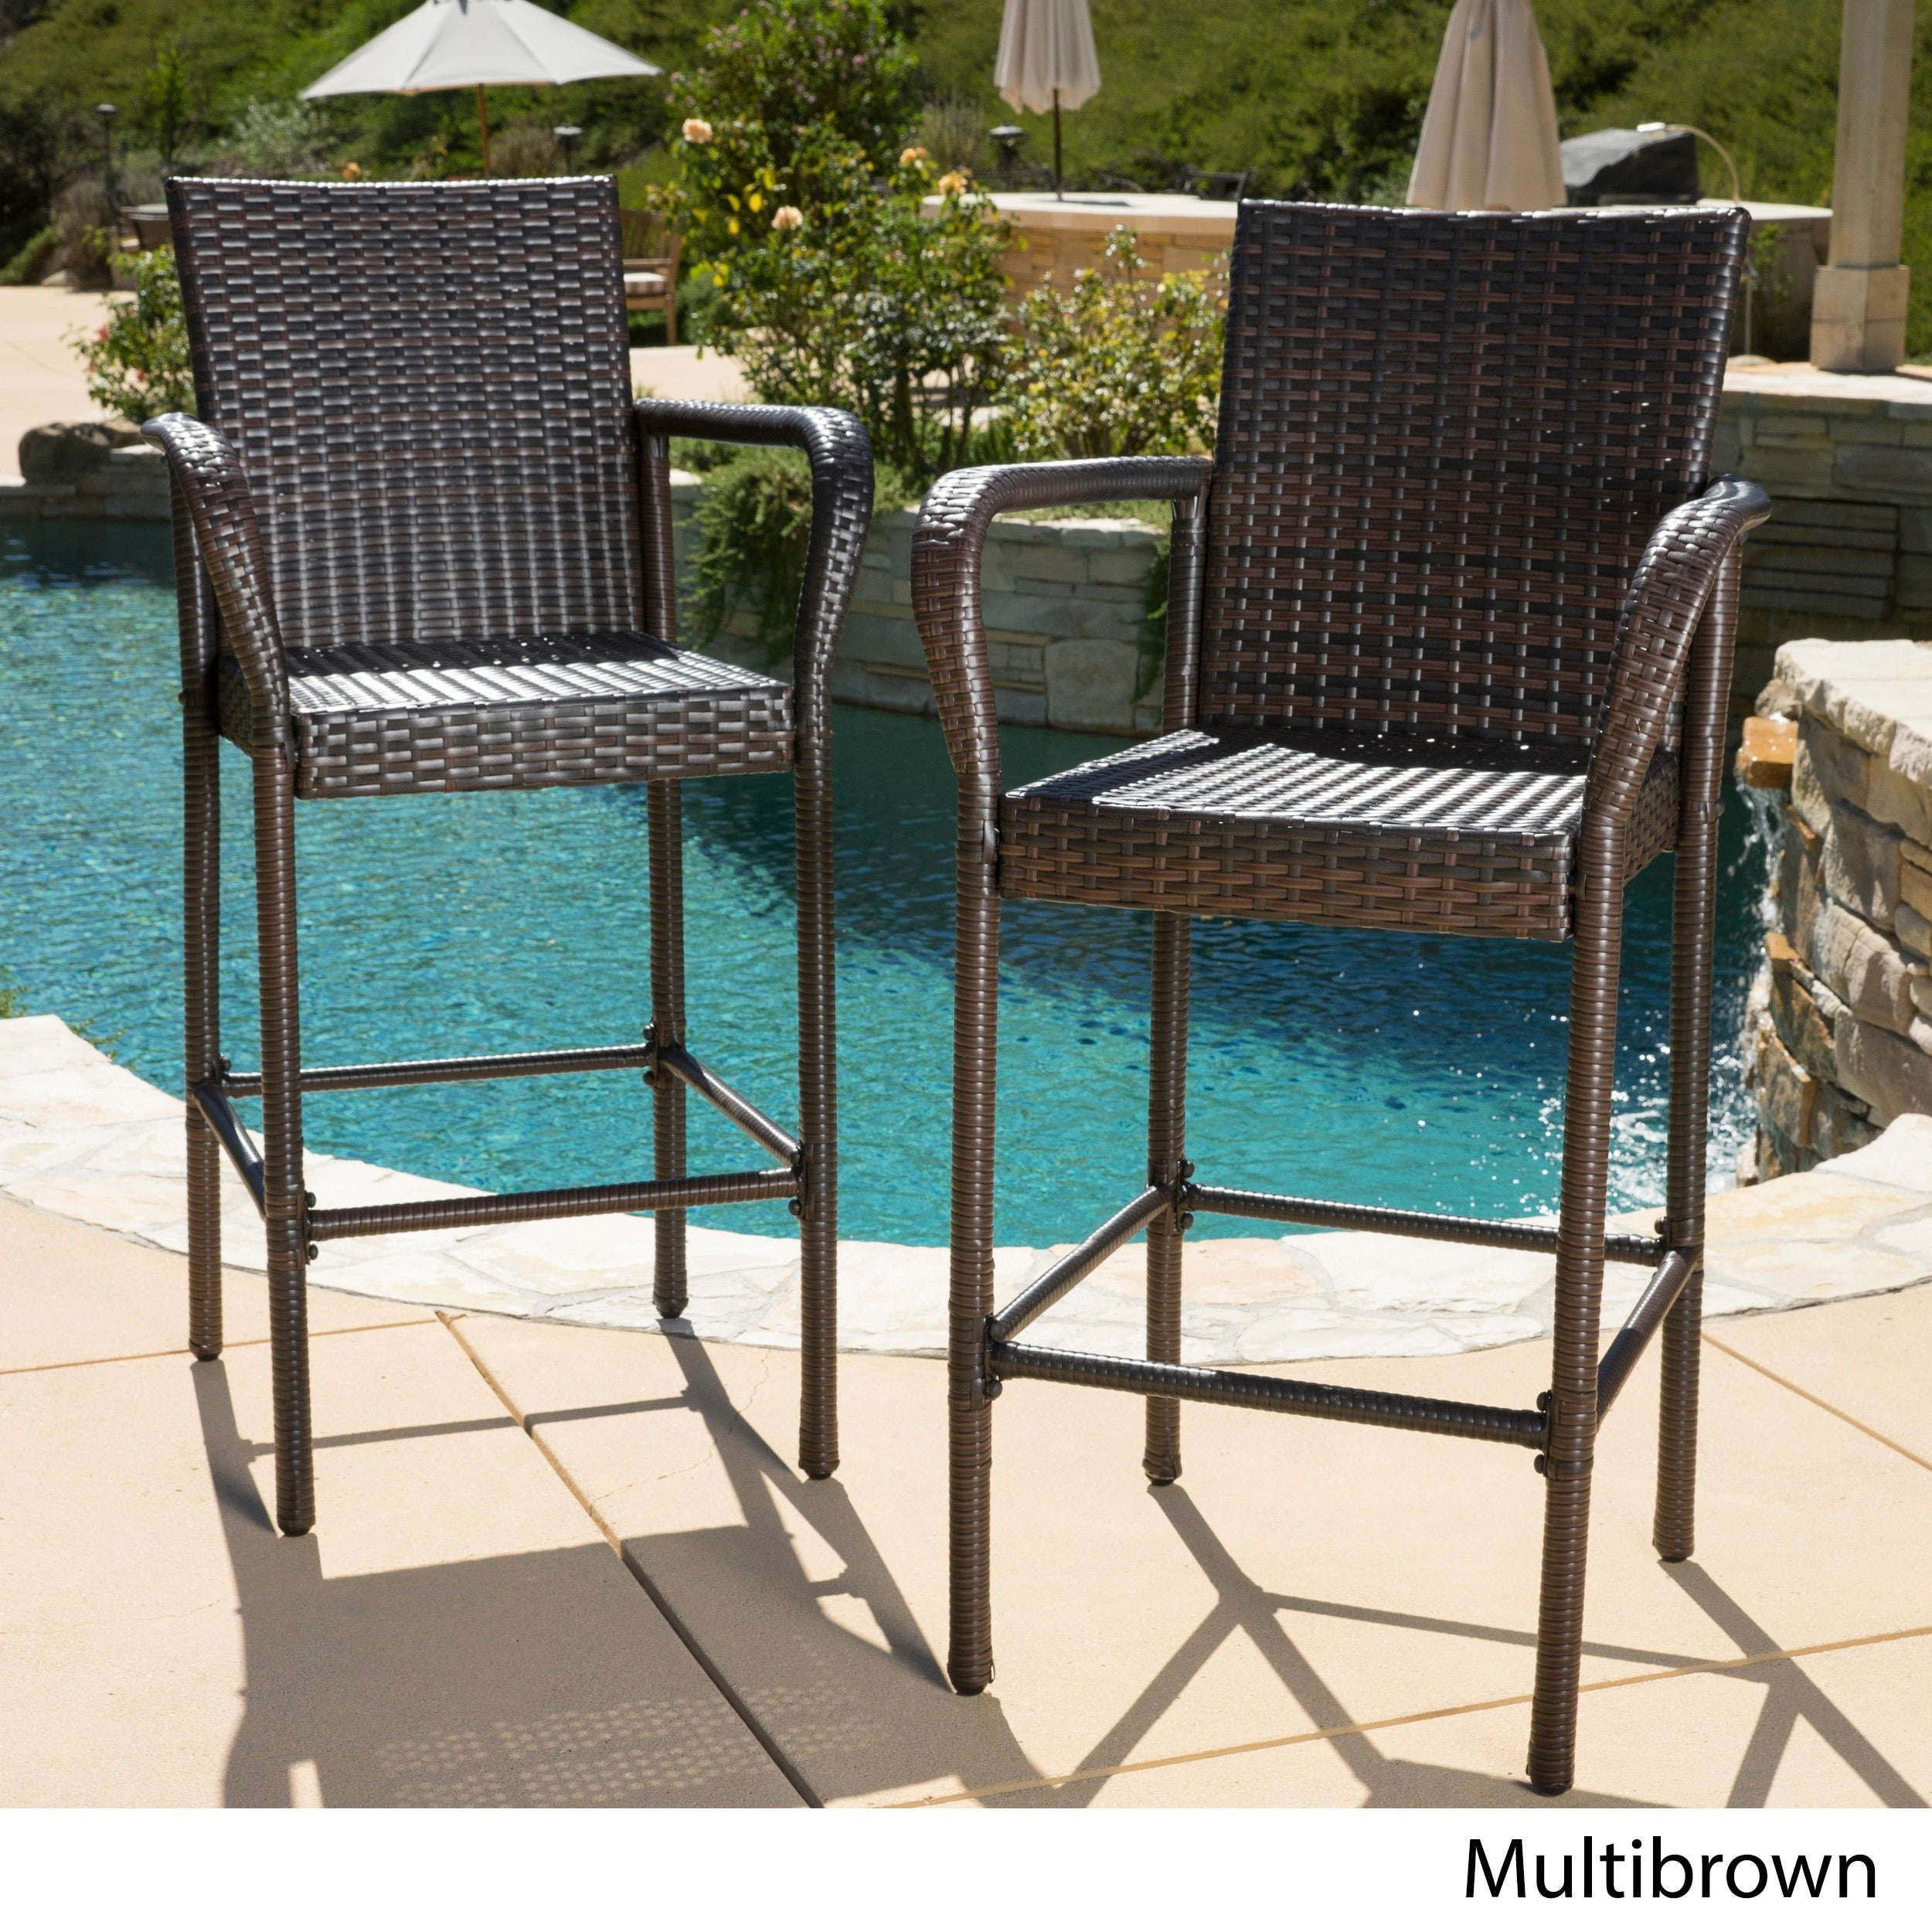 Wicker Patio Furniture Outdoor Seating Dining For Less Overstock